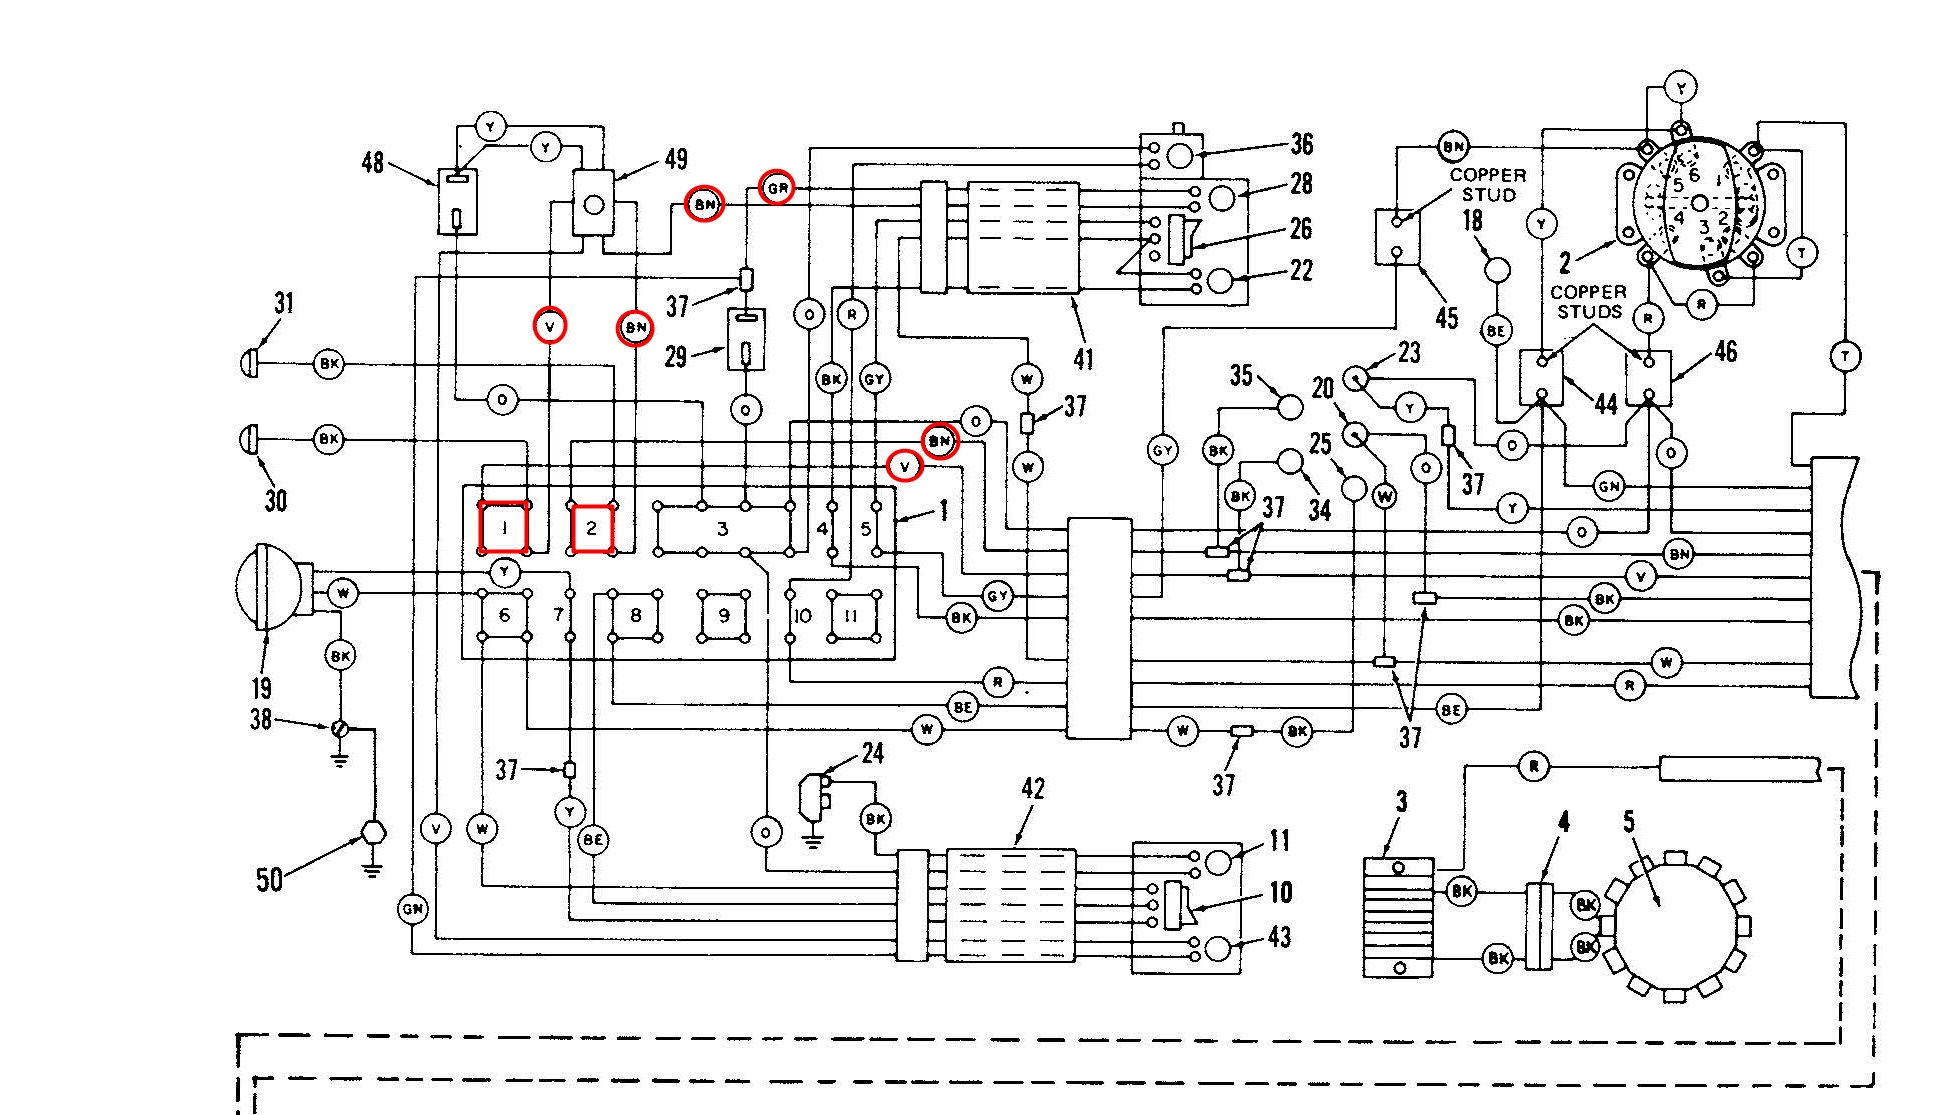 hight resolution of ory circuit diagram continued wiring diagram sheet ory logic diagram continued